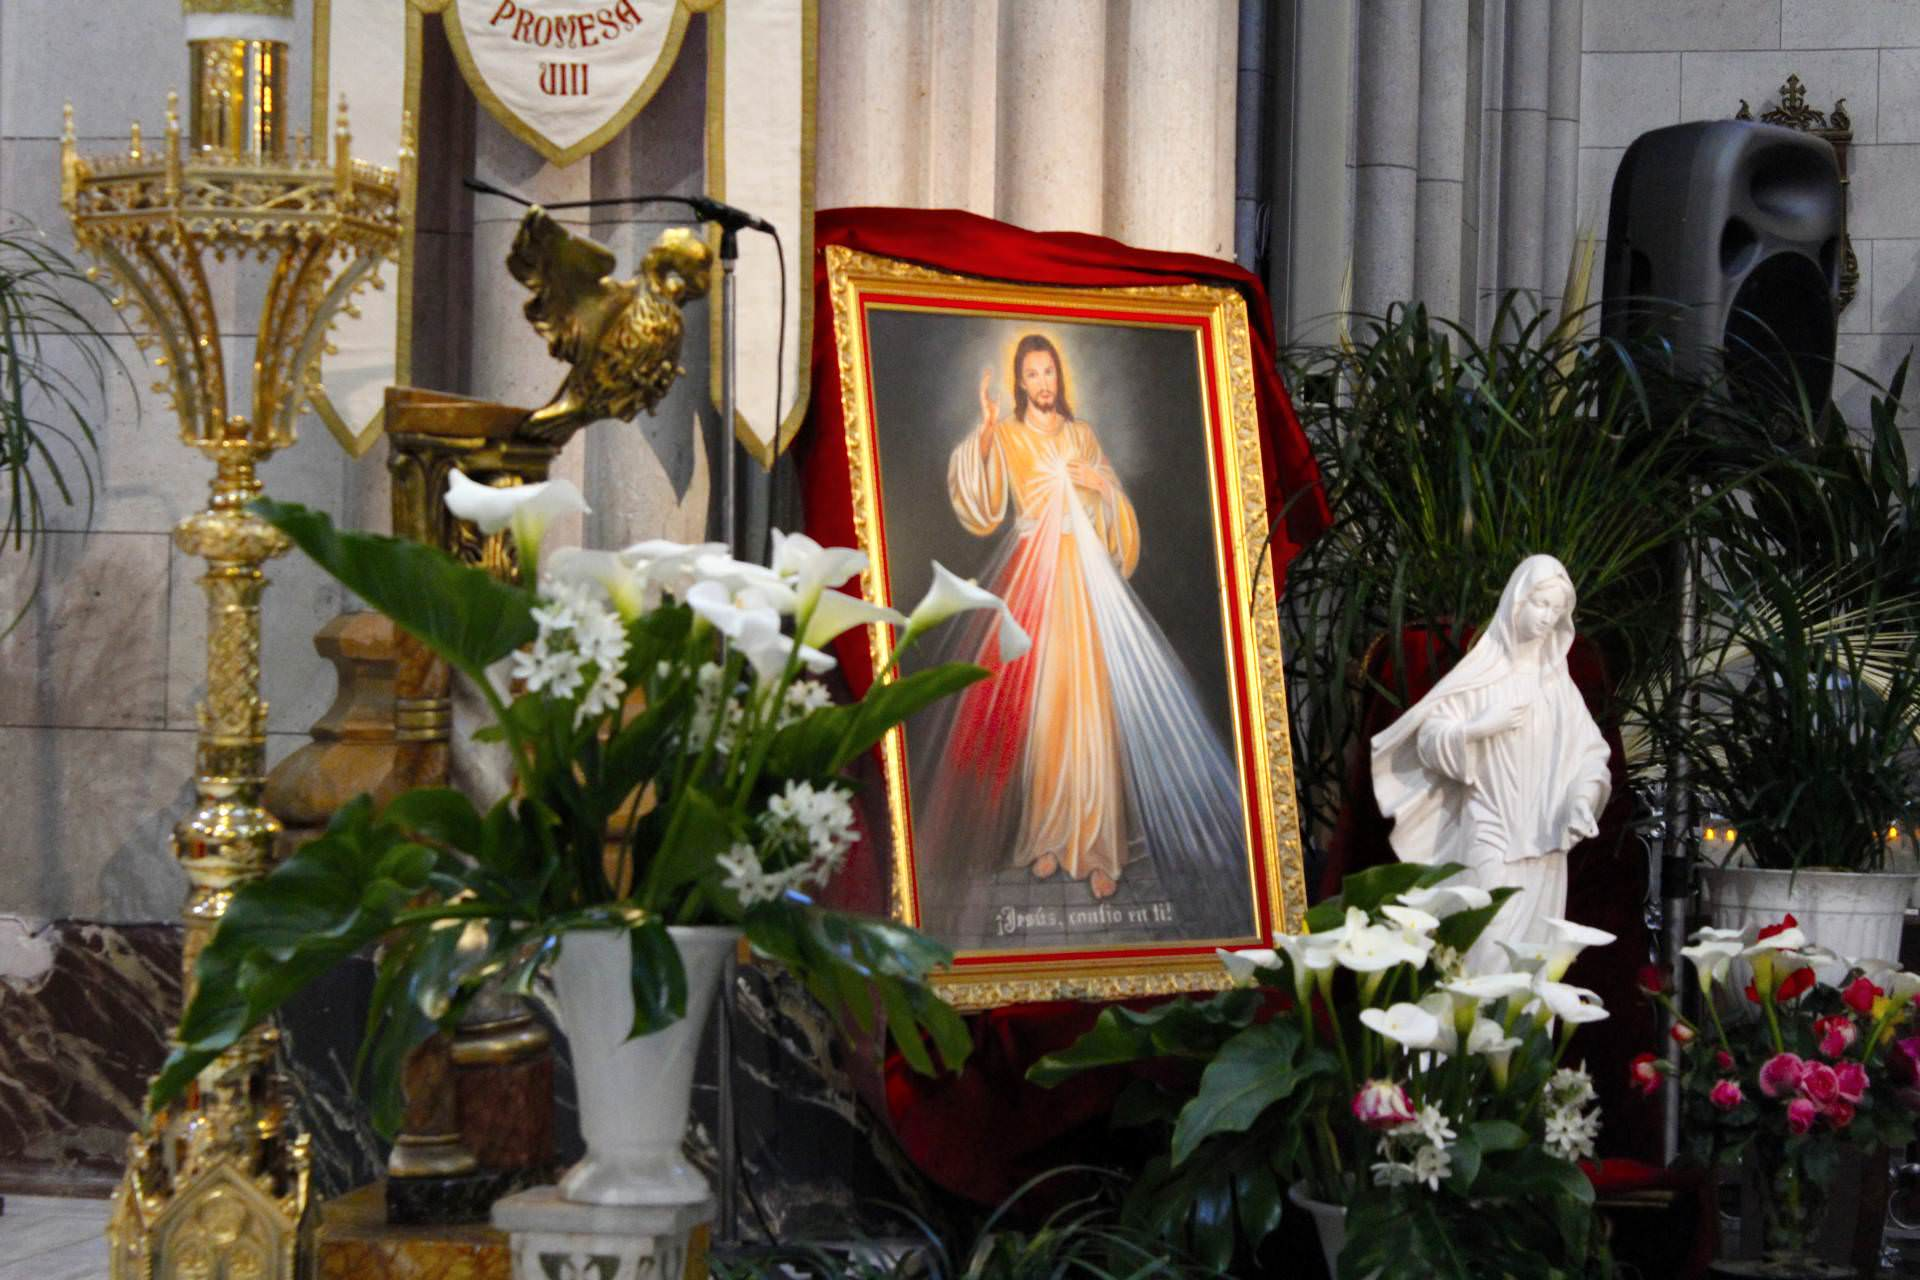 virgin, altar, flowers, jesus christ, mary, virgin mary, lord of mercy, merciful jesus, altar of mercy, solemnity, mary most holy